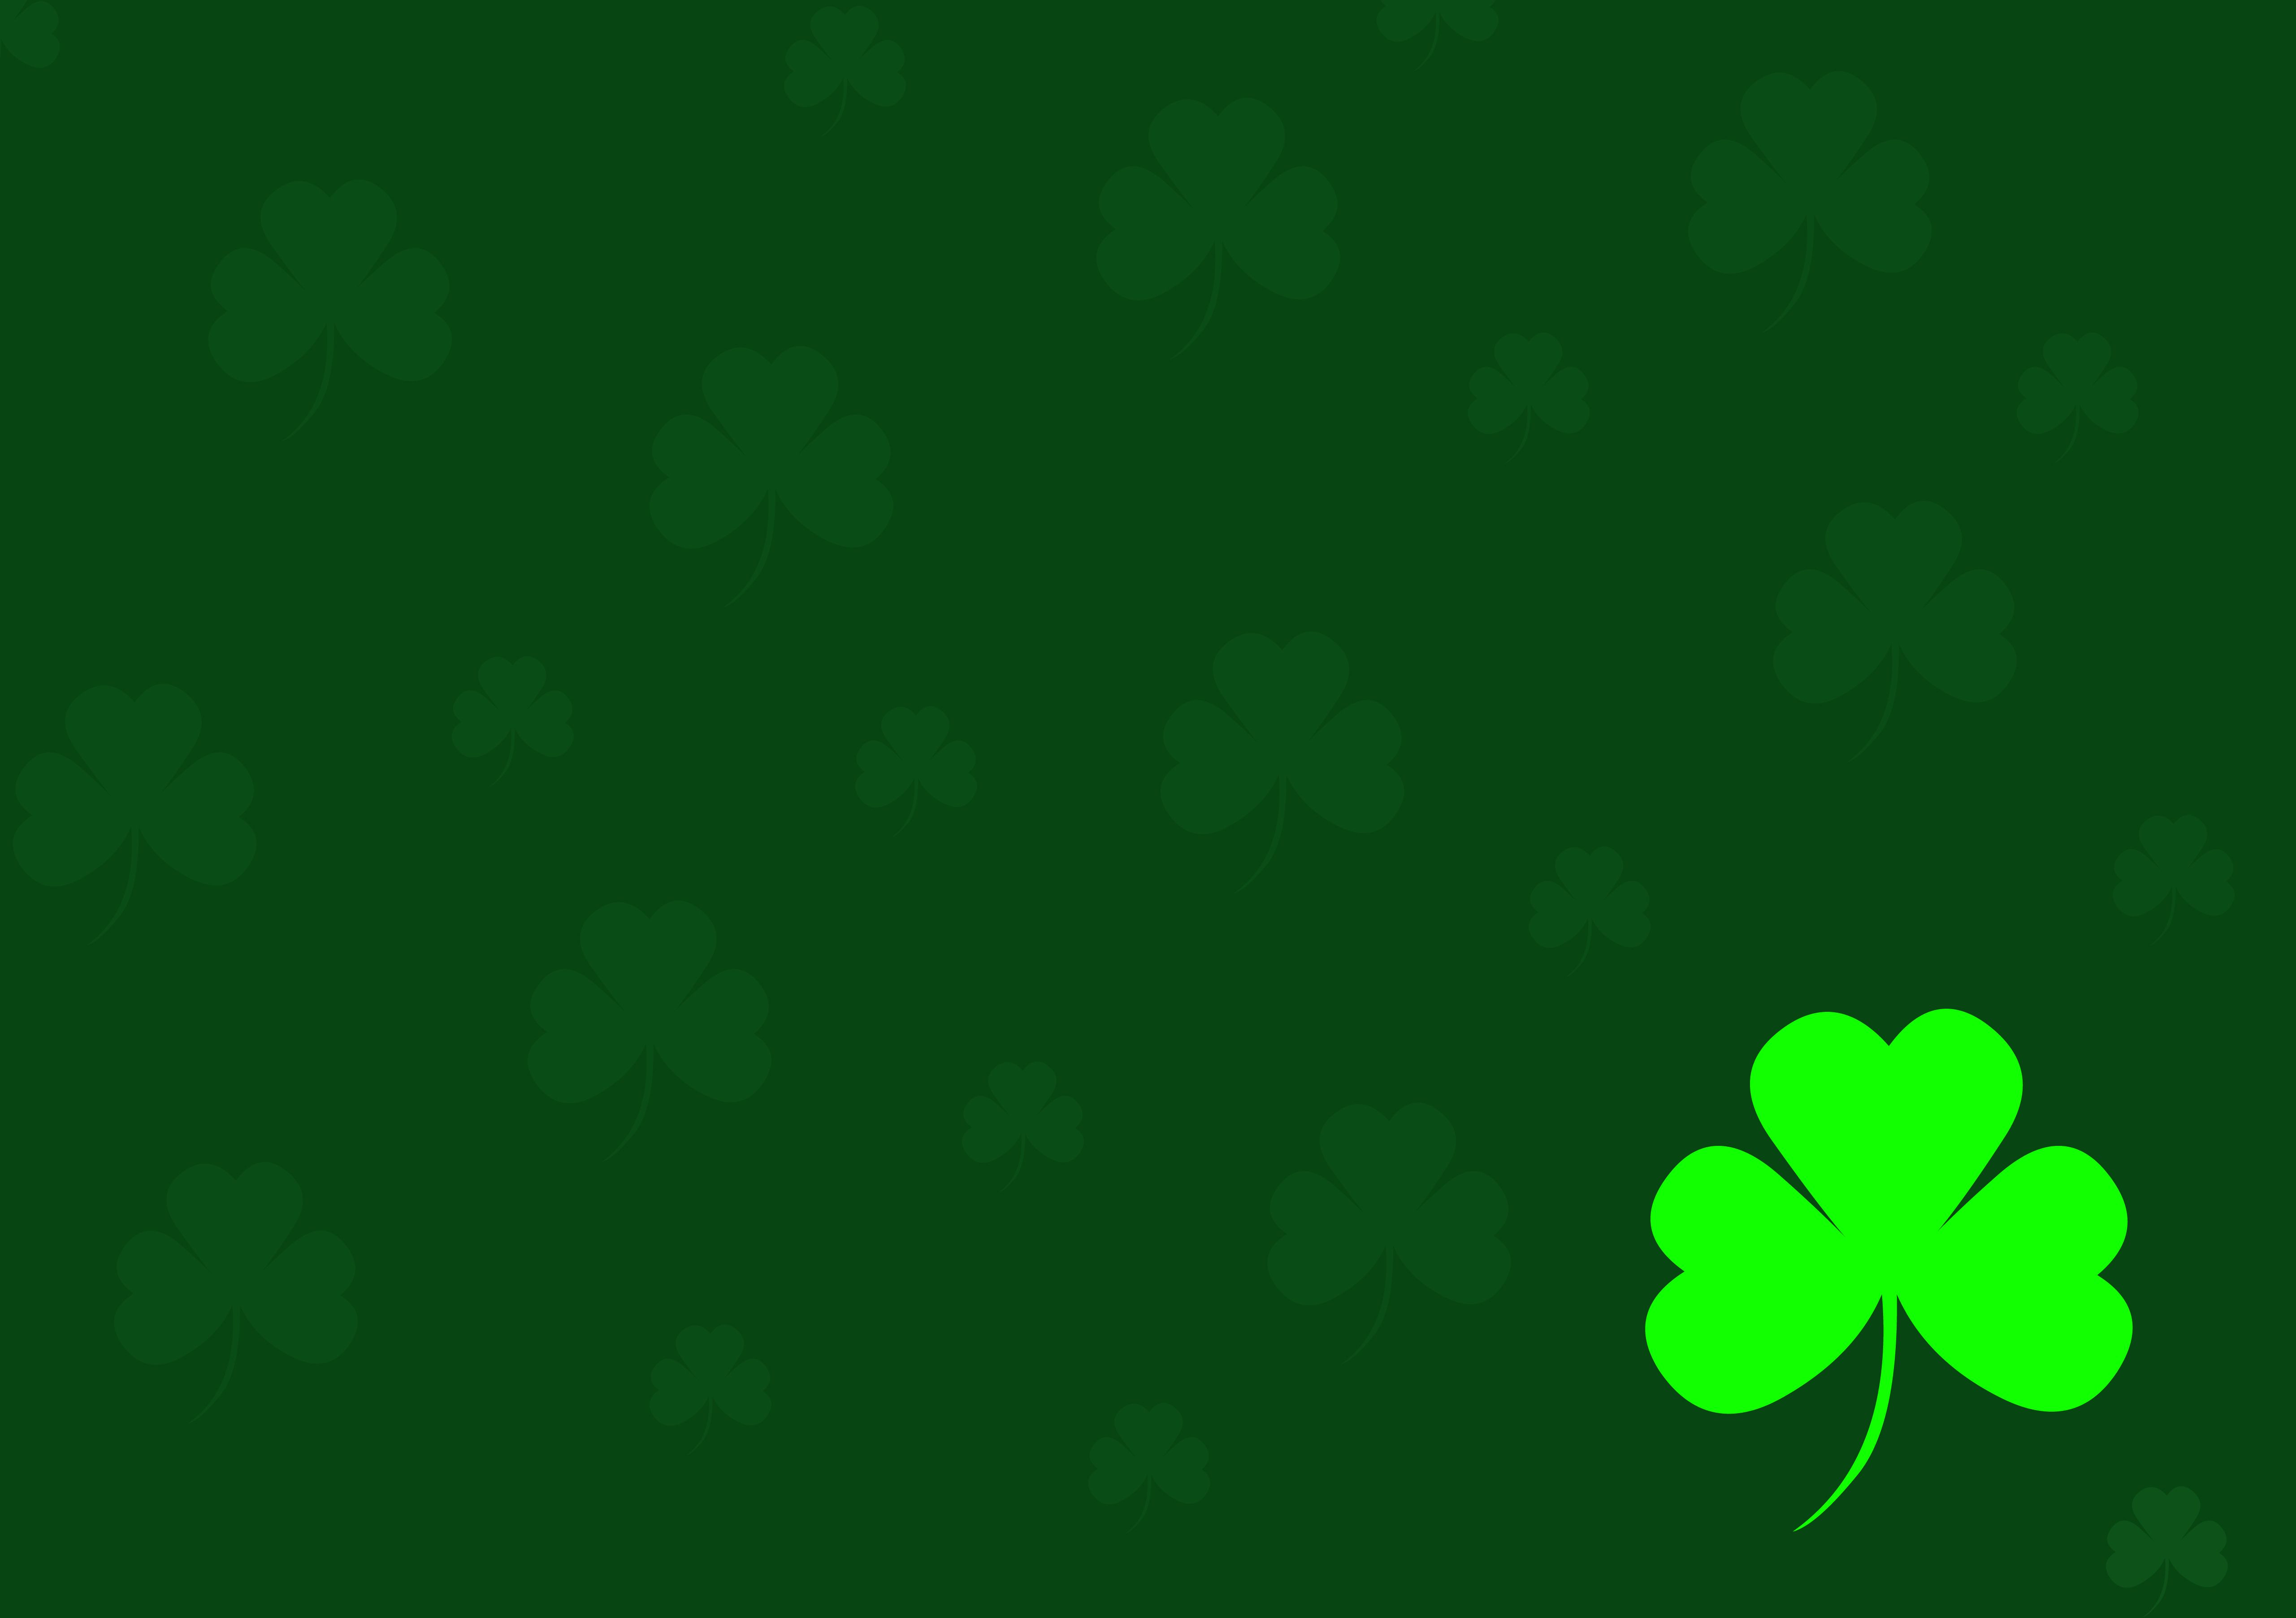 St Patrick S Day Wallpaper Backgrounds St Patricks Day Wallpaper